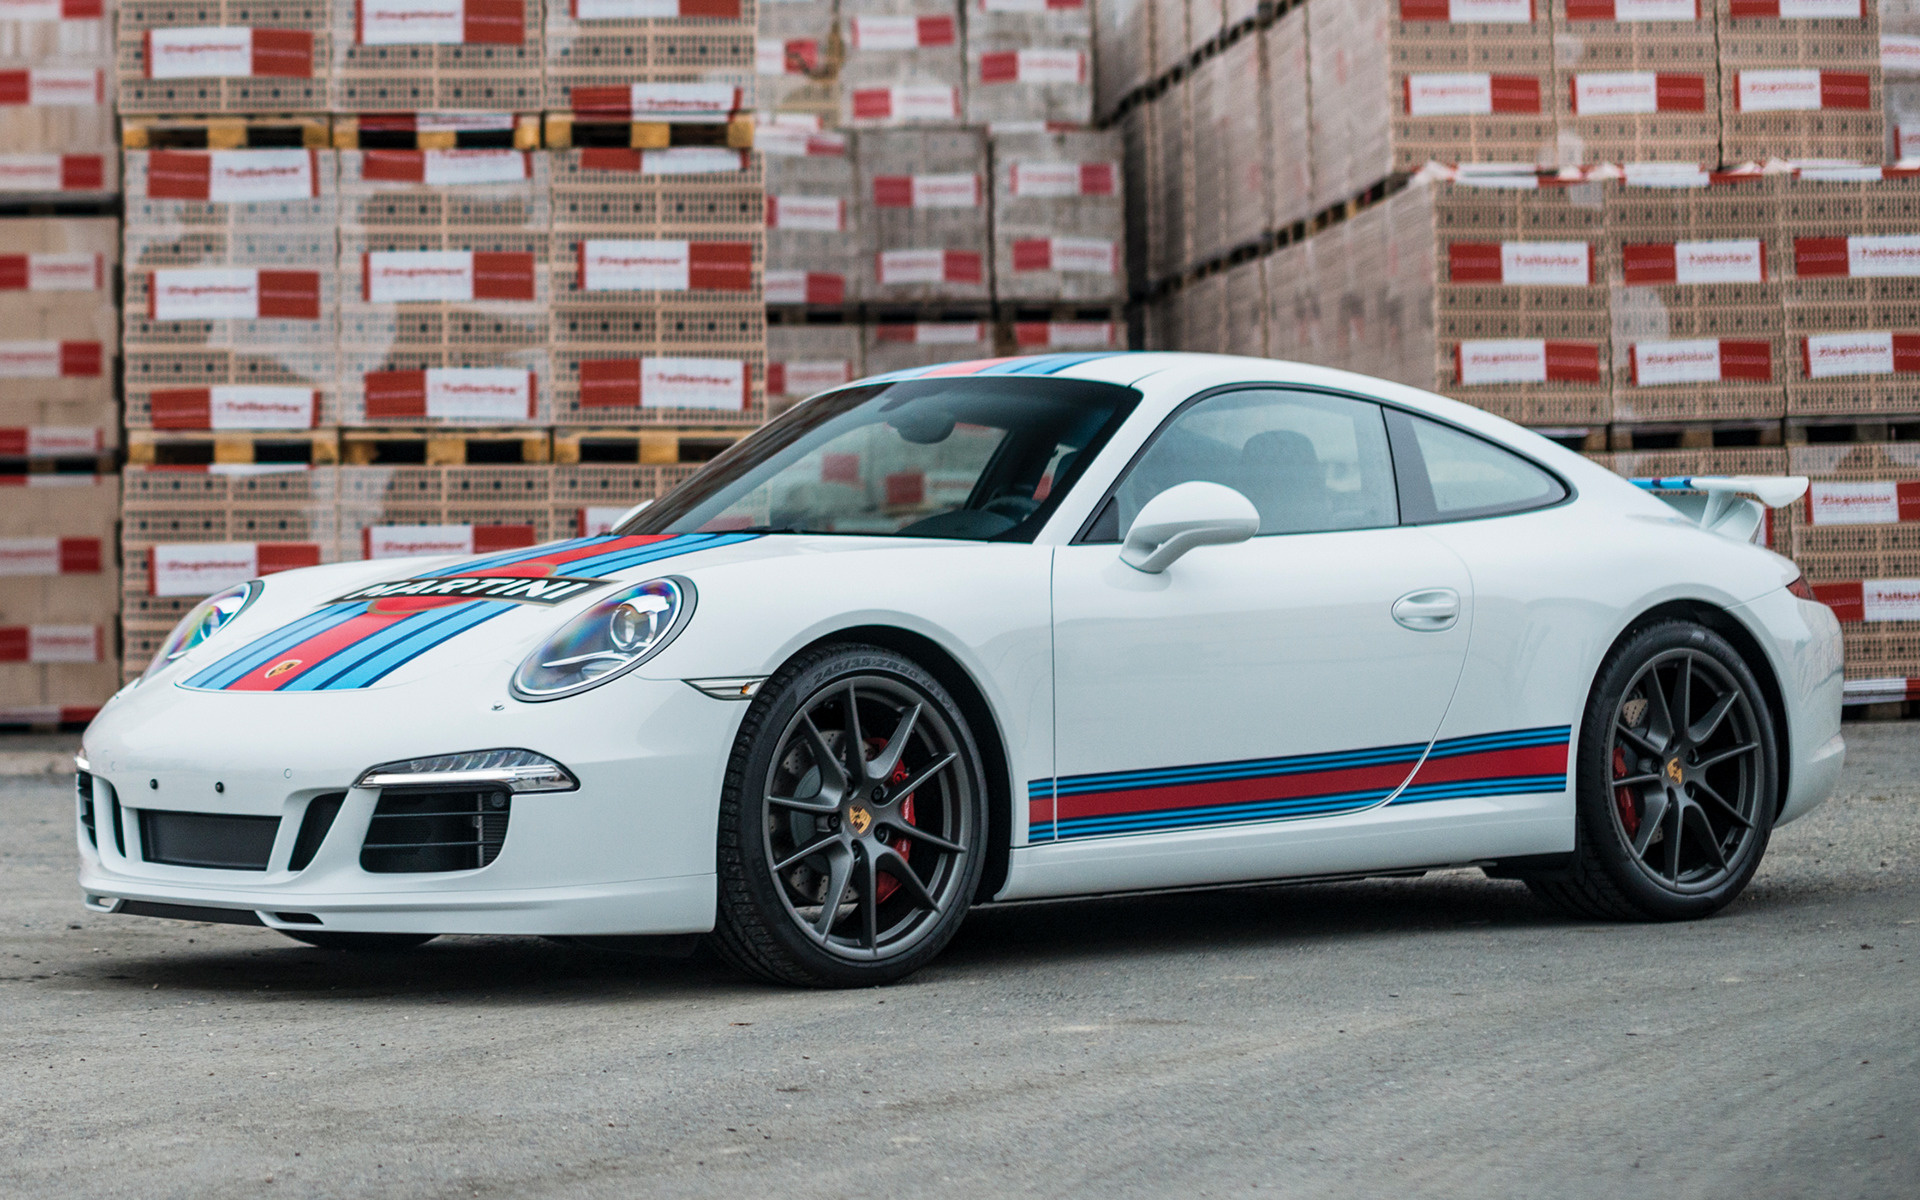 porsche 911 carrera s martini racing edition 2014. Black Bedroom Furniture Sets. Home Design Ideas